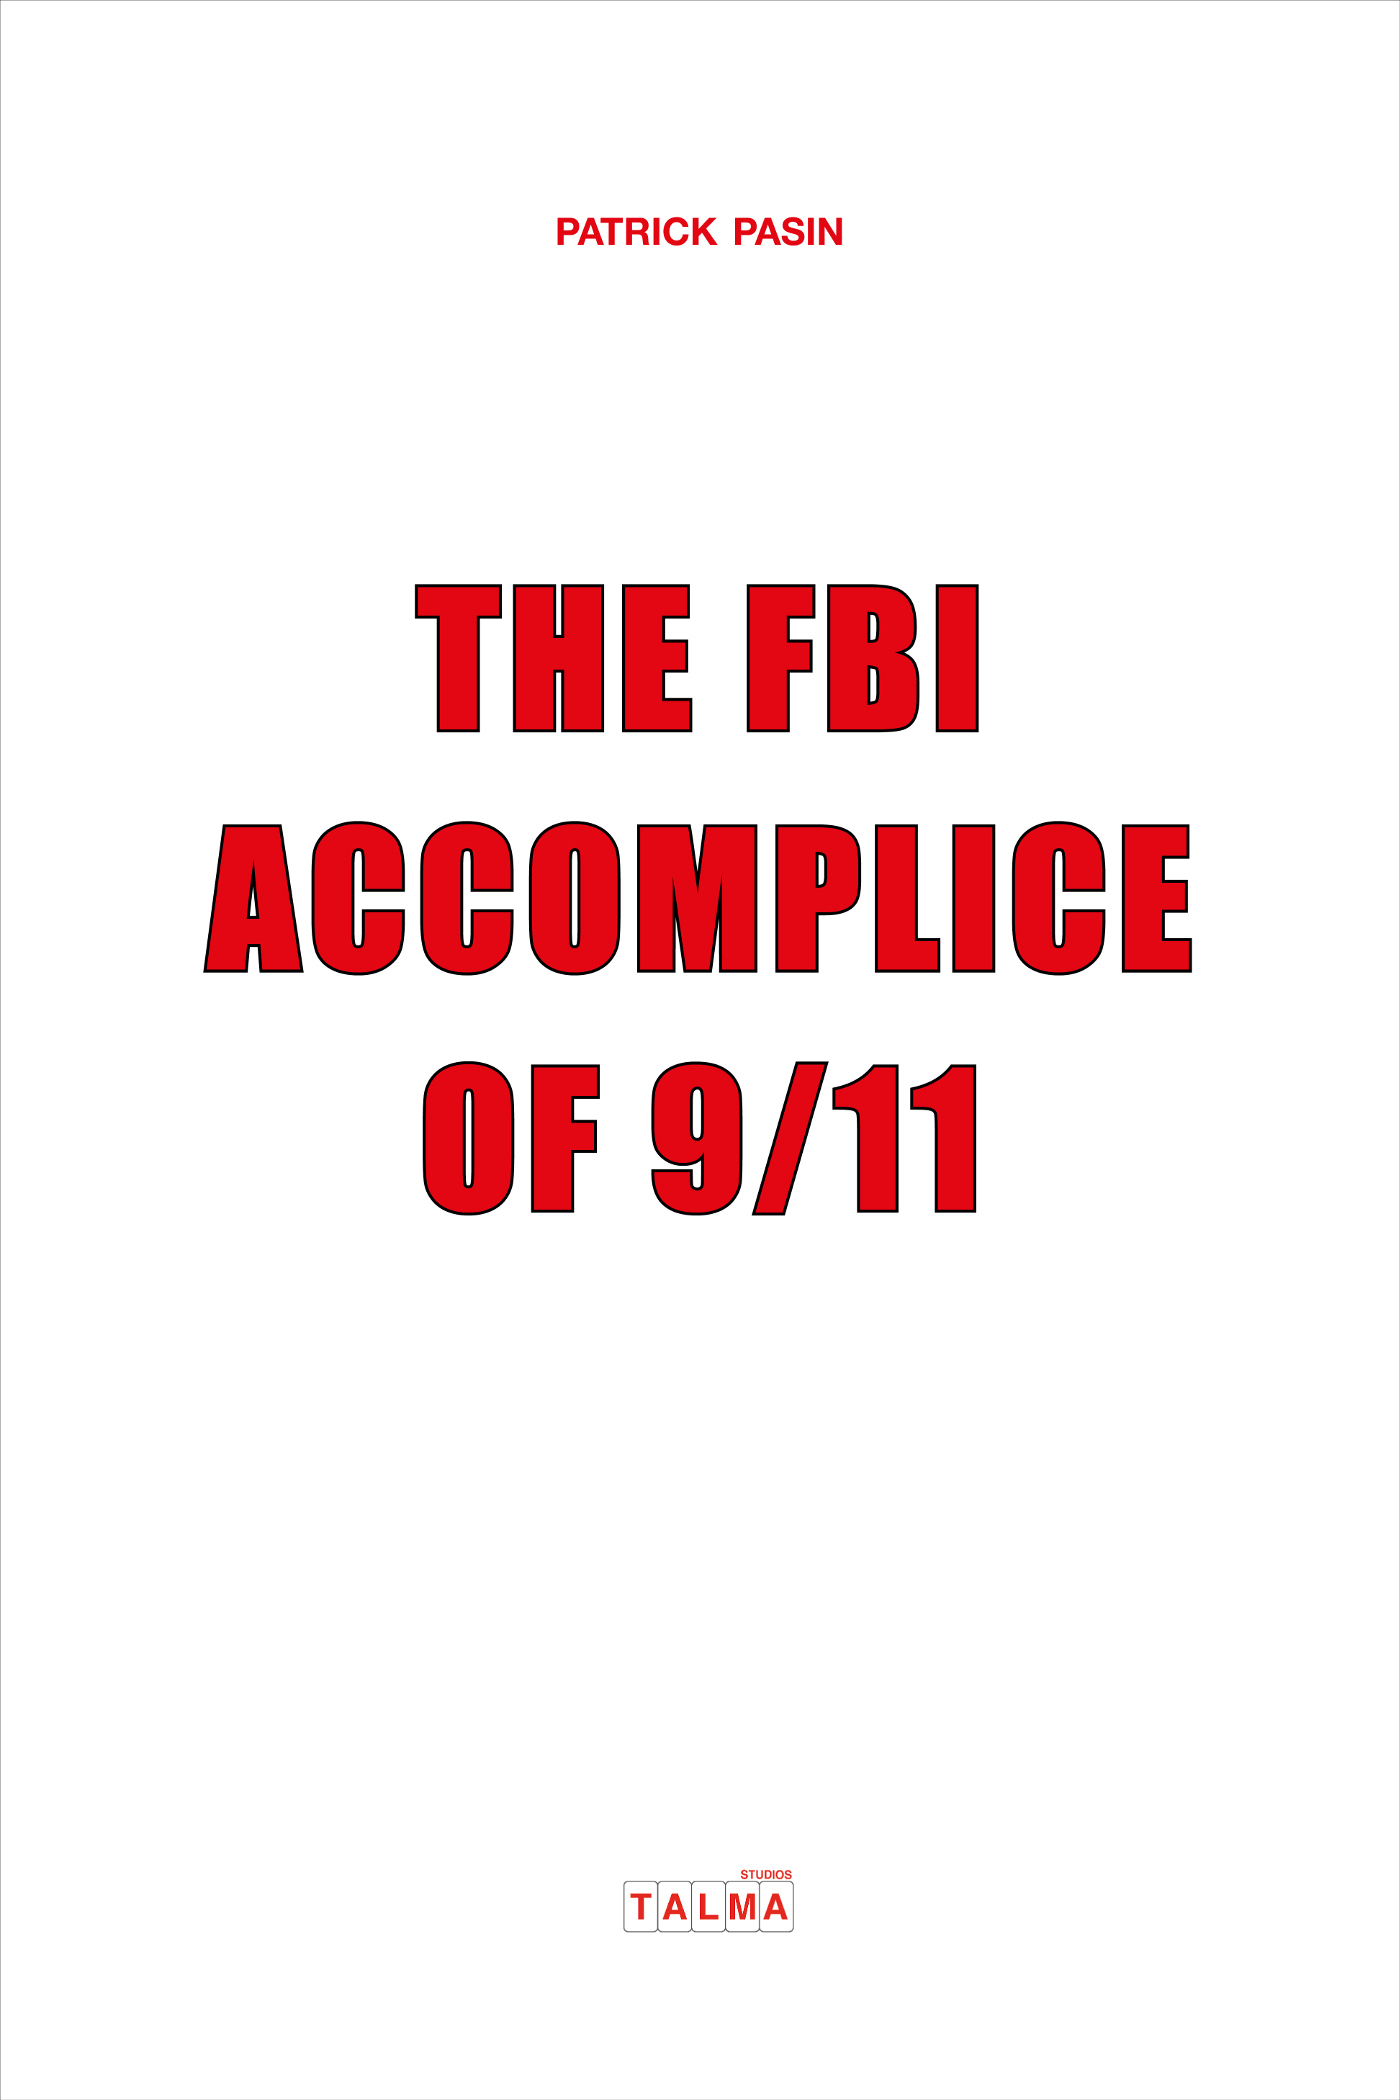 THE FBI, ACCOMPLICE OF 9/11